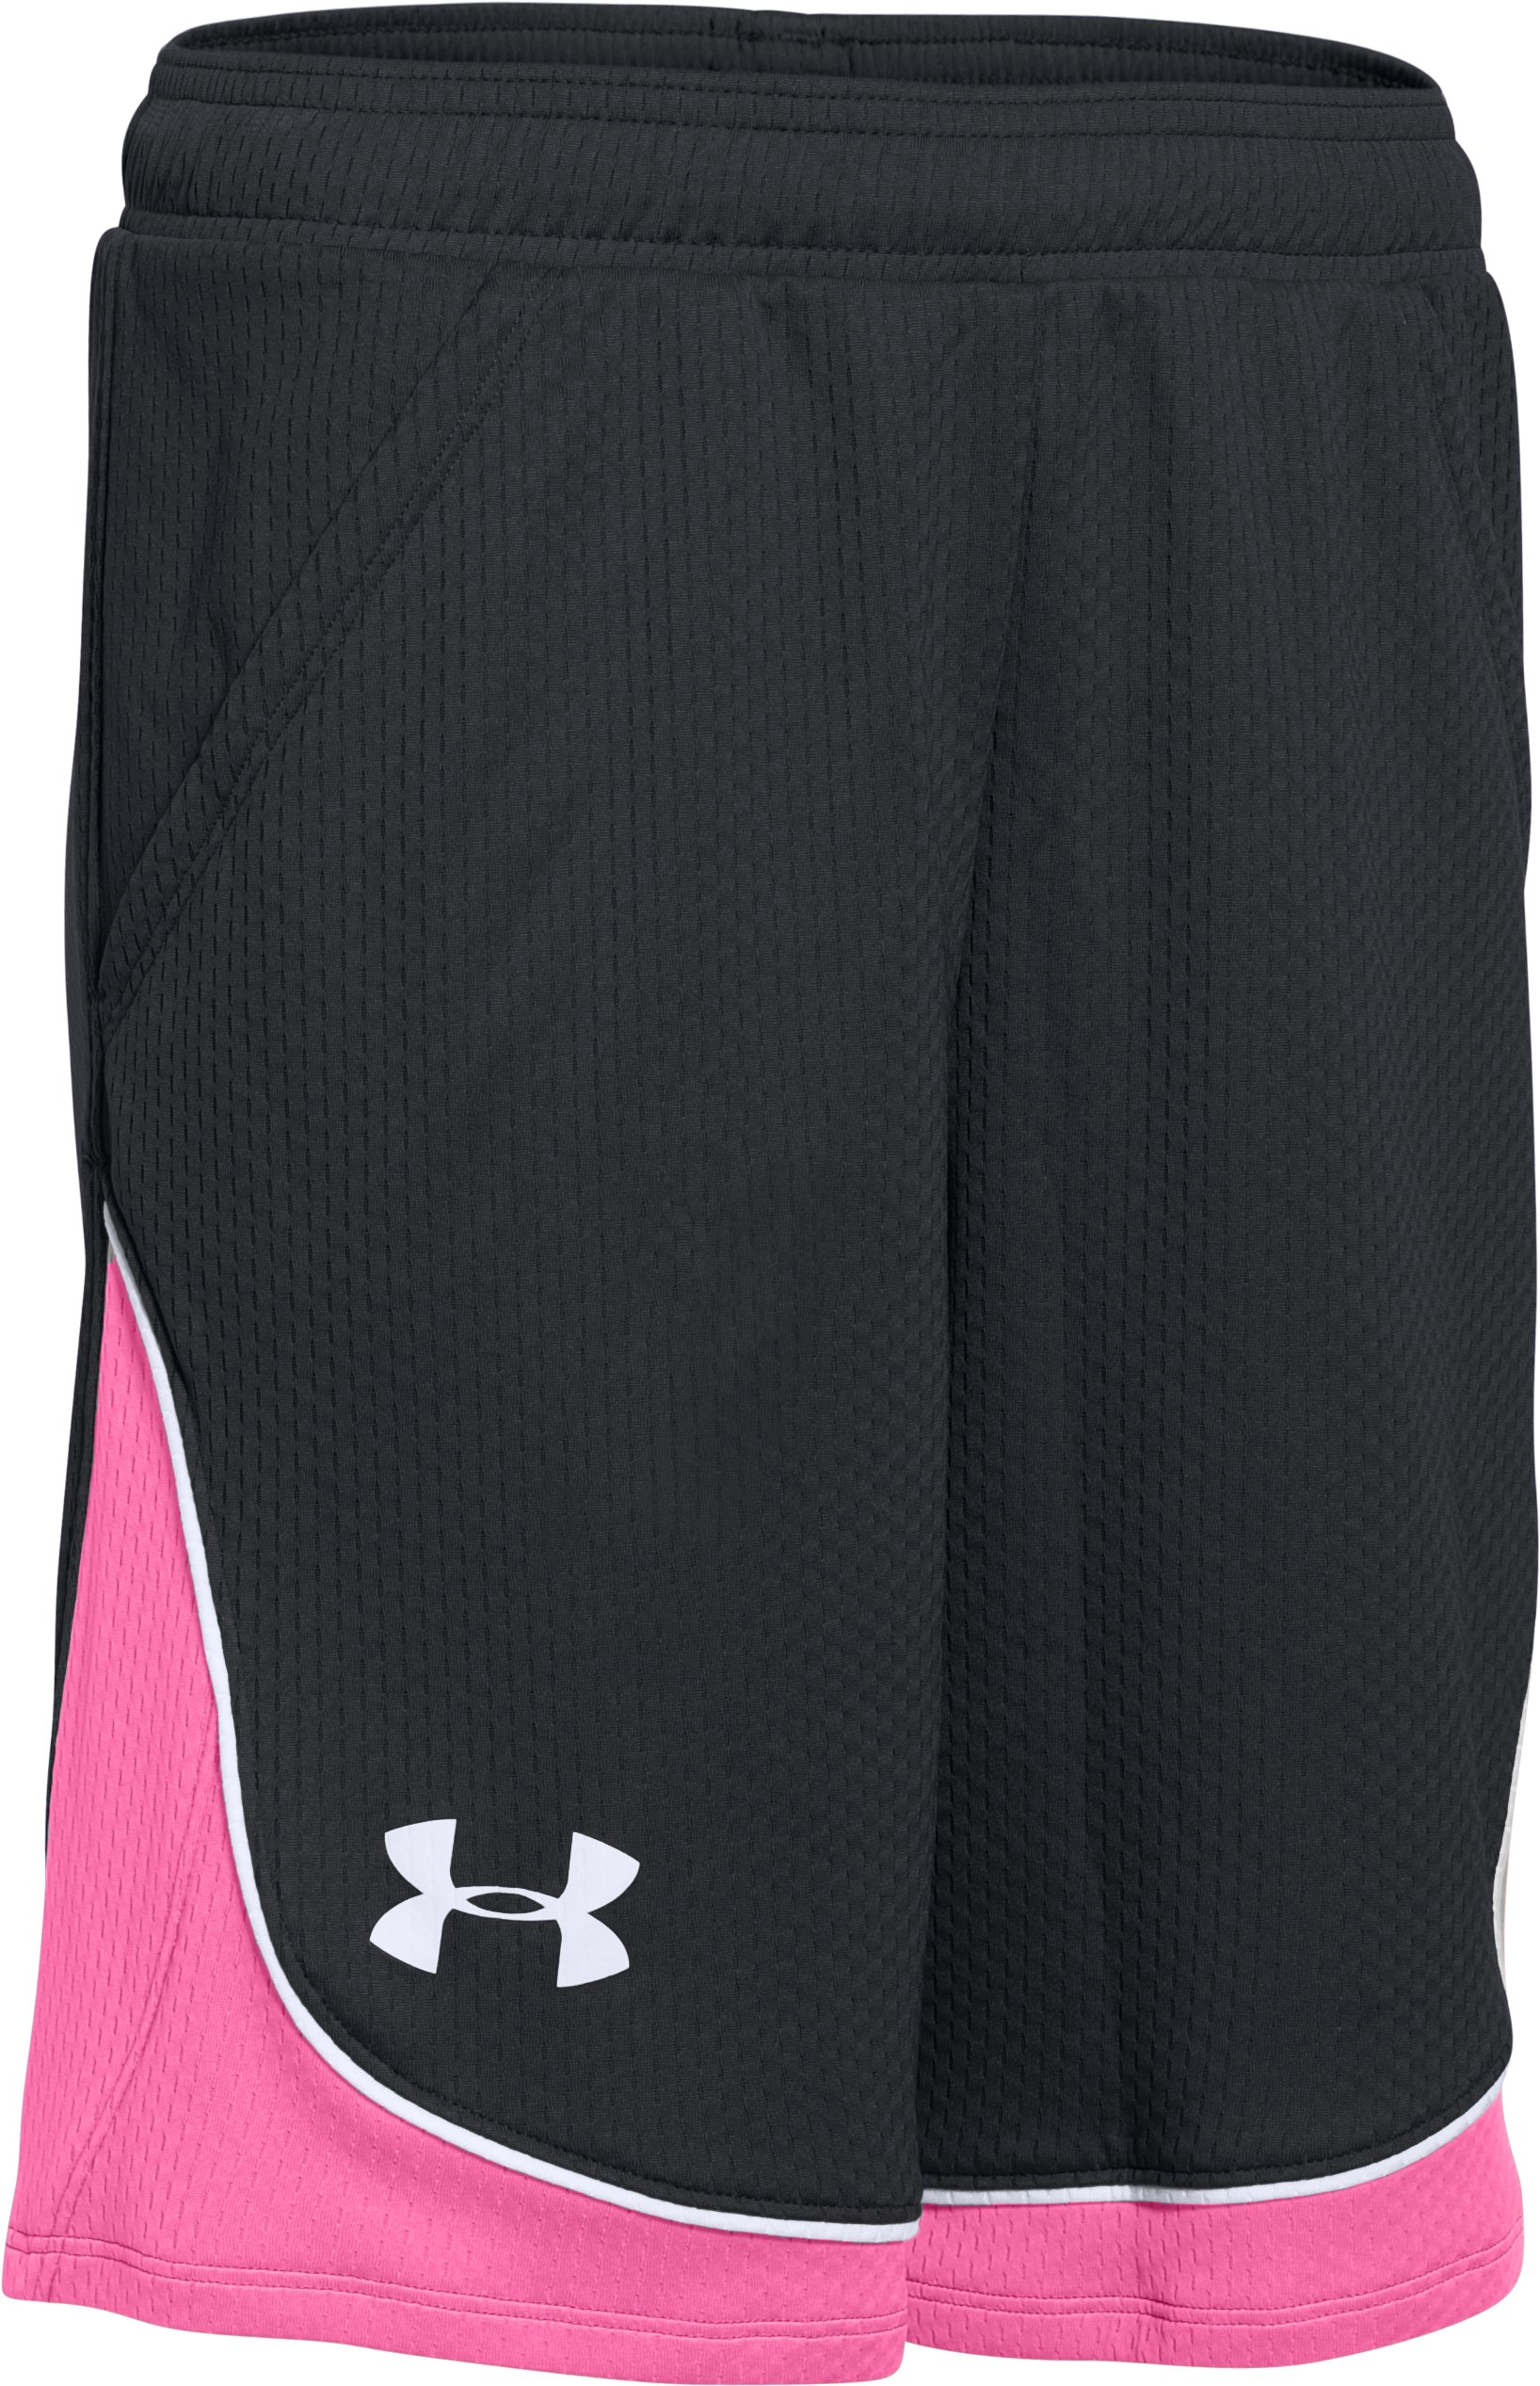 Girls' UA Pop A Shot Basketball Shorts, Black